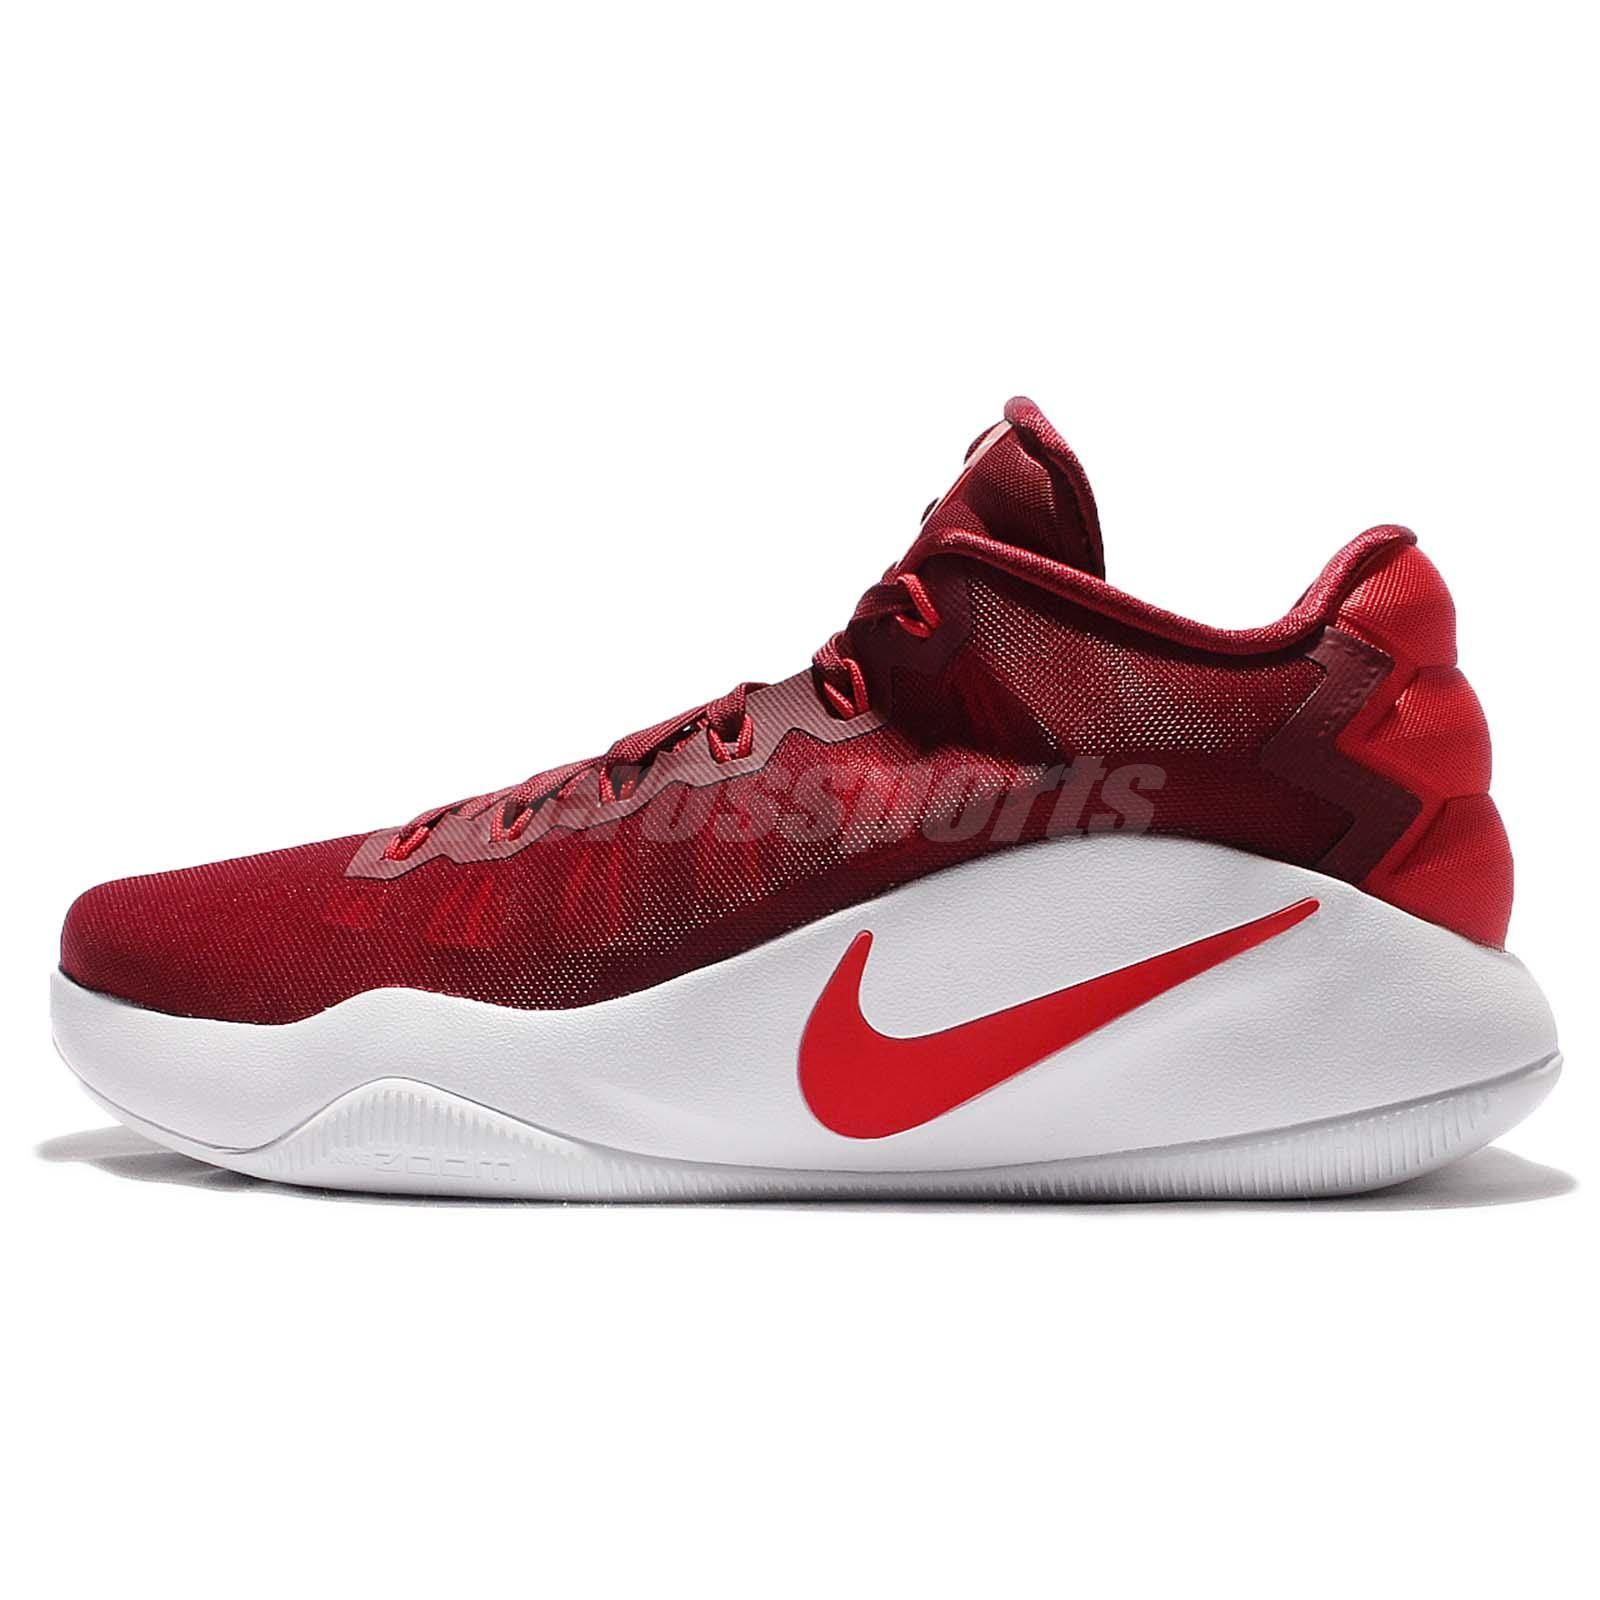 Nike hyperdunk 2016 low red